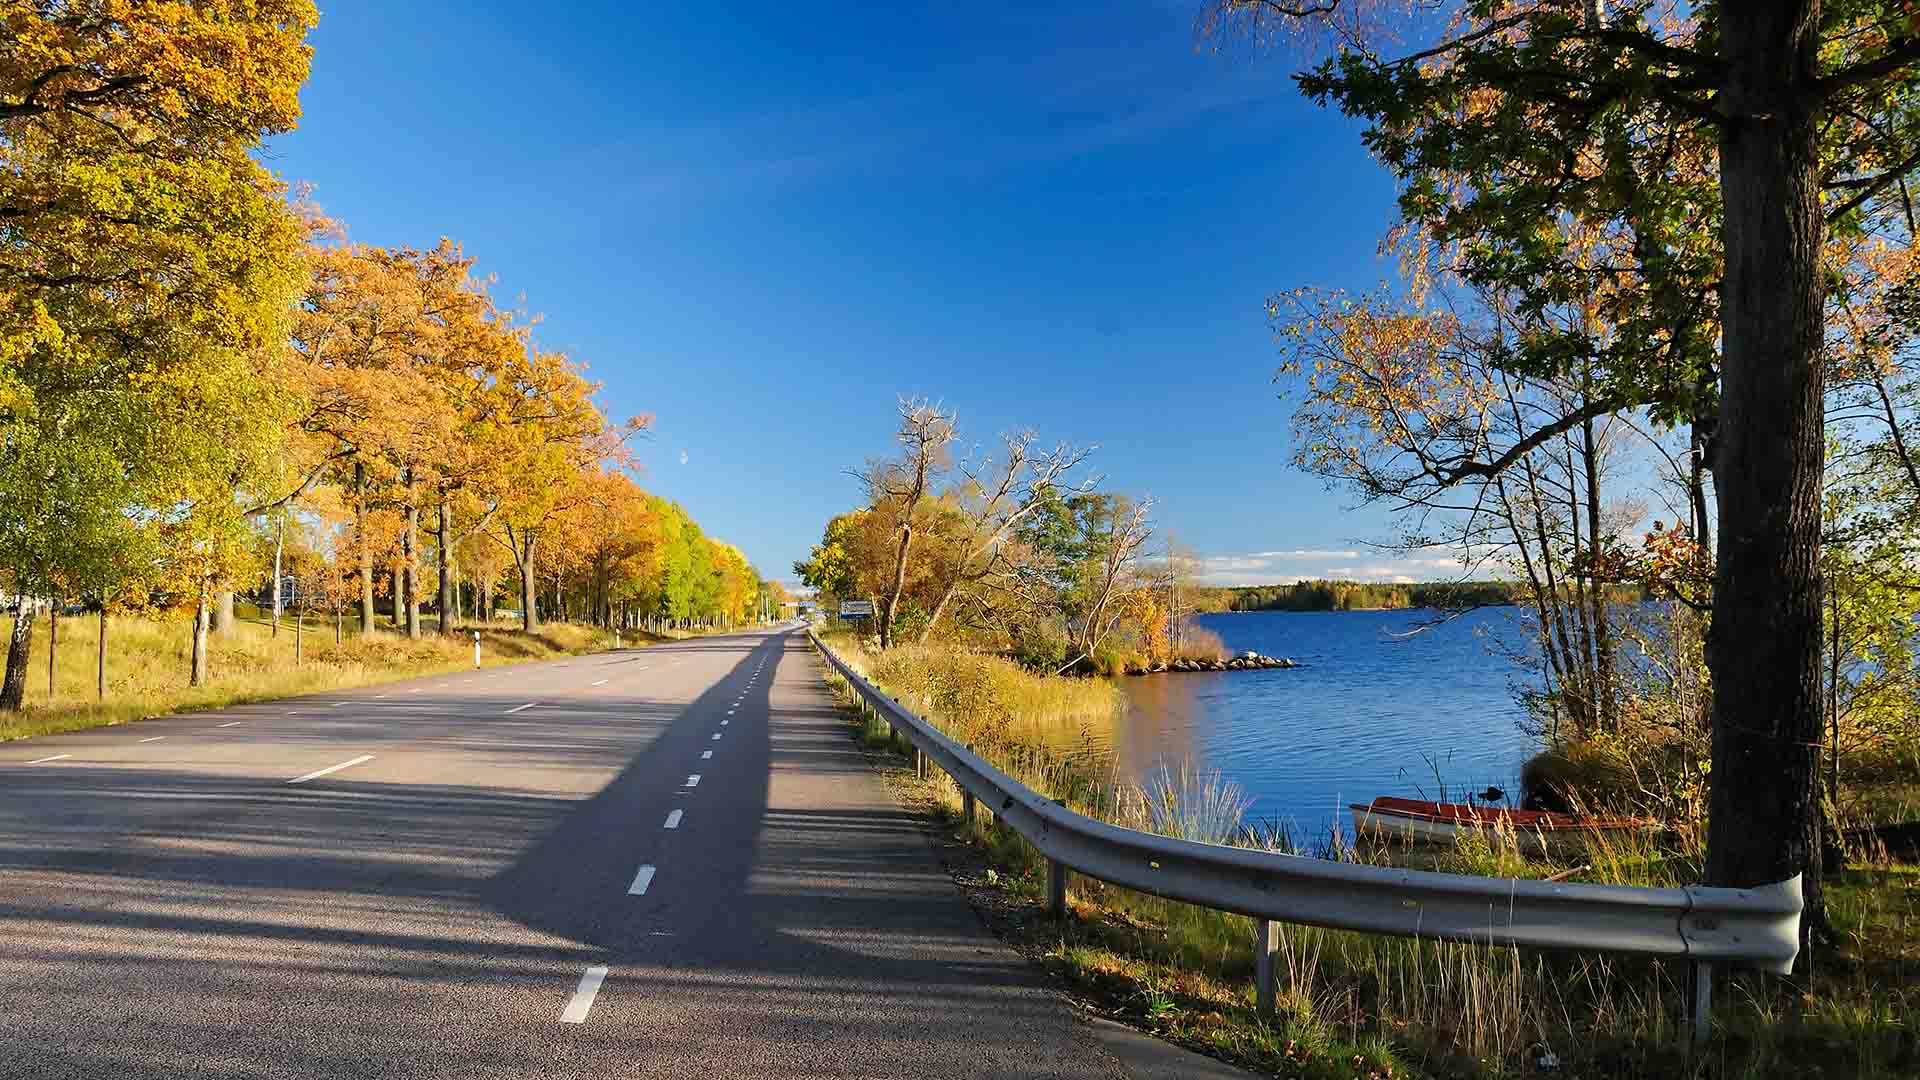 Sweden self-drive tour in autumn